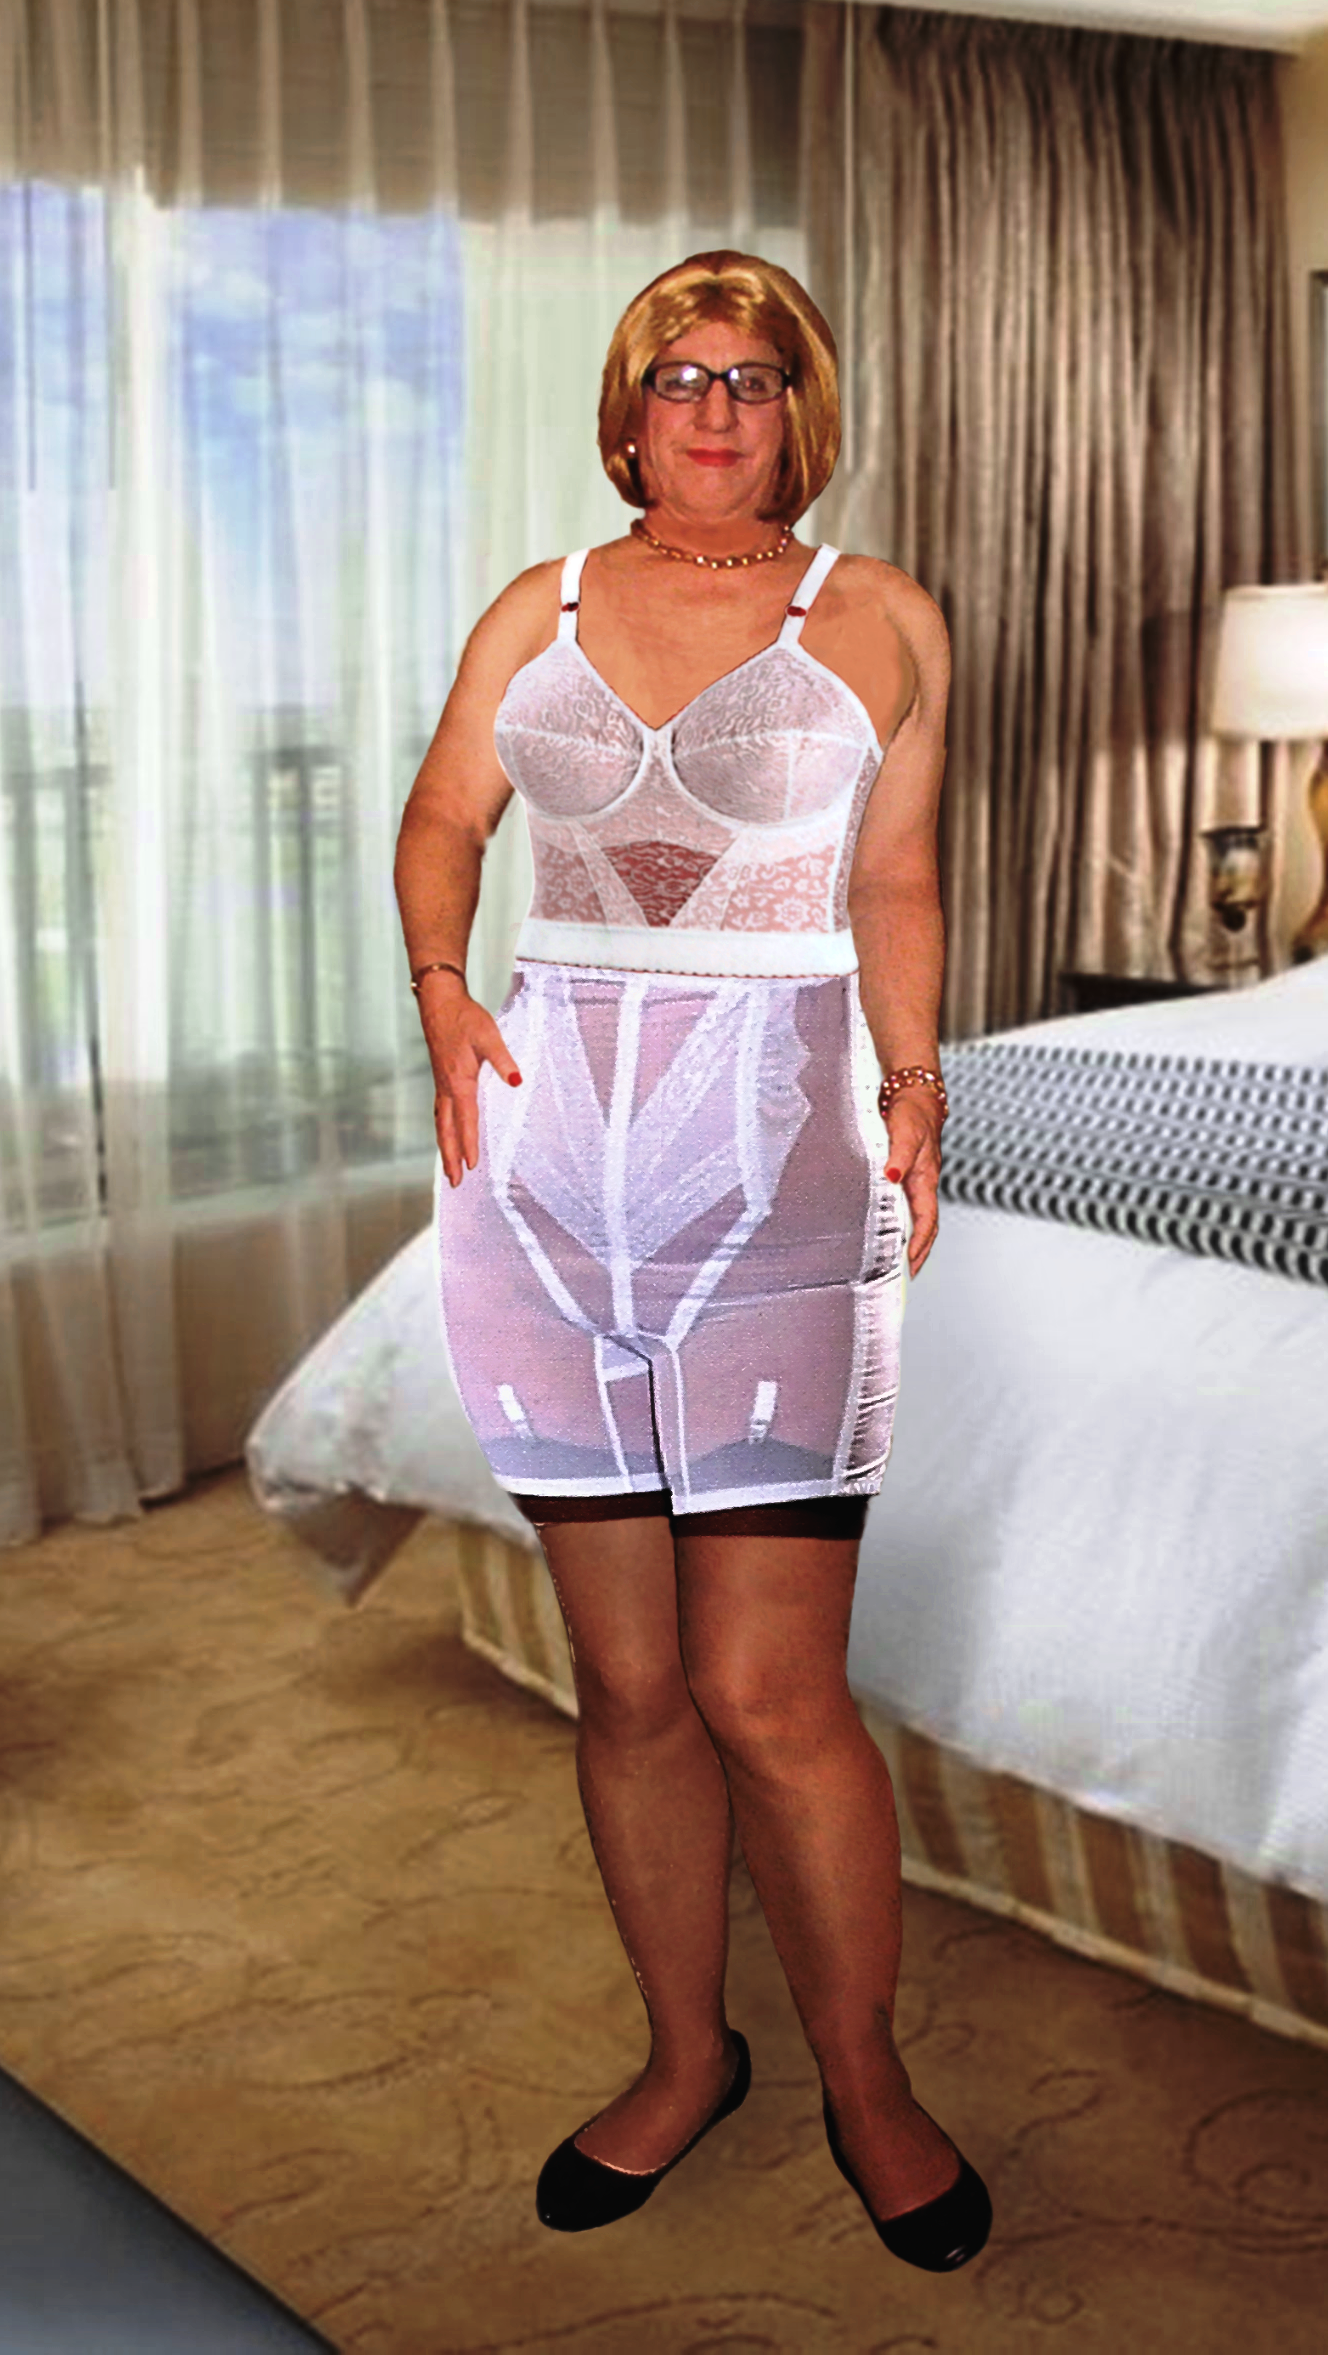 f61829074a RAGO STYLE 6210 - HIGH WAIST HALF LEG EXTRA FIRM SHAPING This is my go to  shapewear. This is about as firm control as you can get.